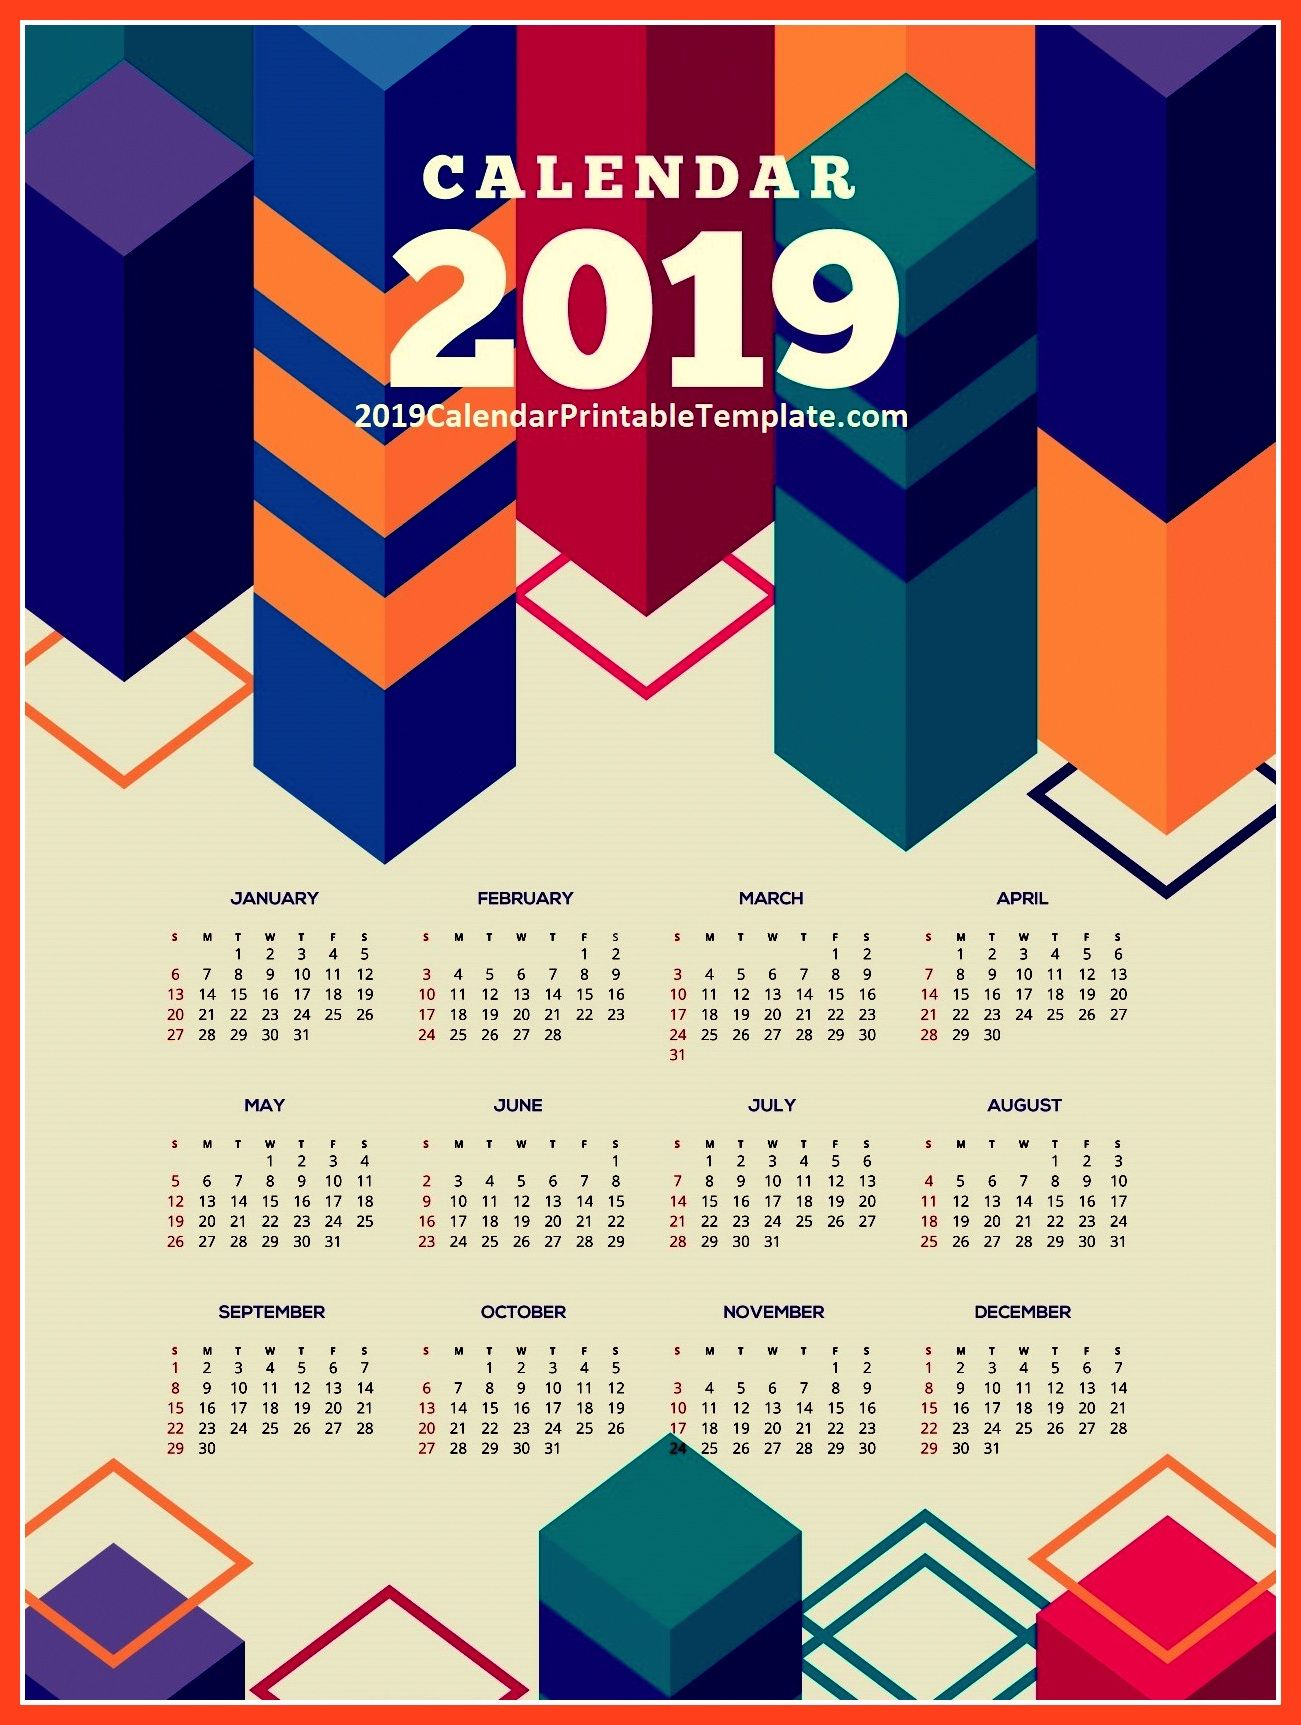 2019 calendar canada printable template holidays httpswww2019calendarprintabletemplatecom